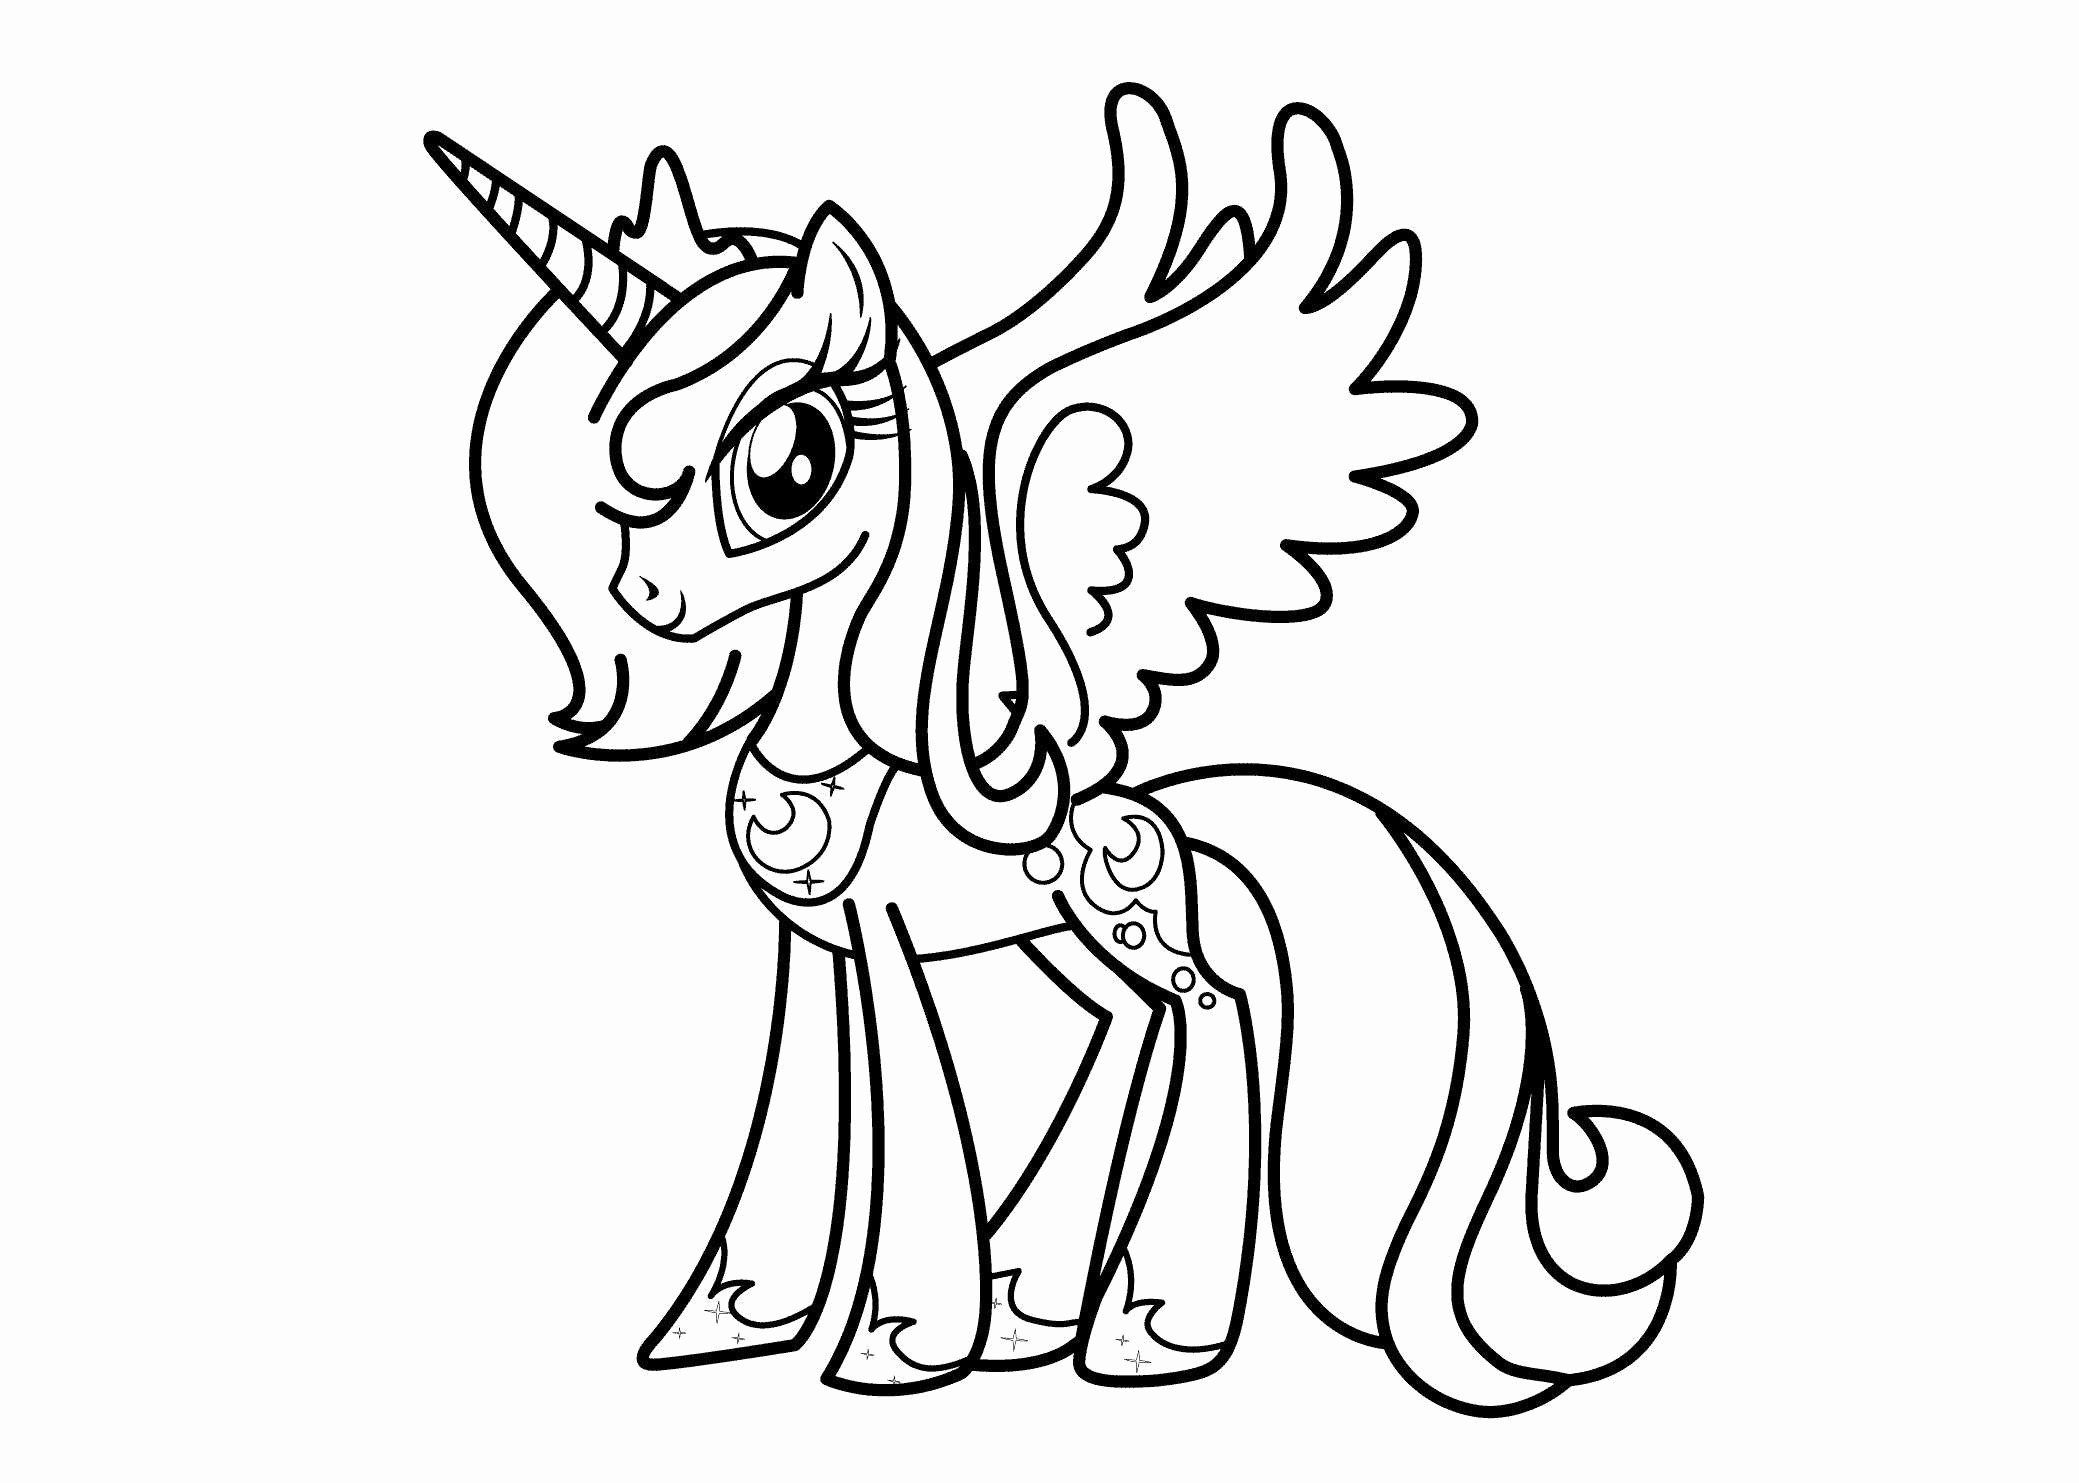 My Little Pony Coloring Best Of Ausmalbilder My Little Pony Bilder Download And My Little Pony Coloring Princess Coloring Pages Disney Princess Coloring Pages